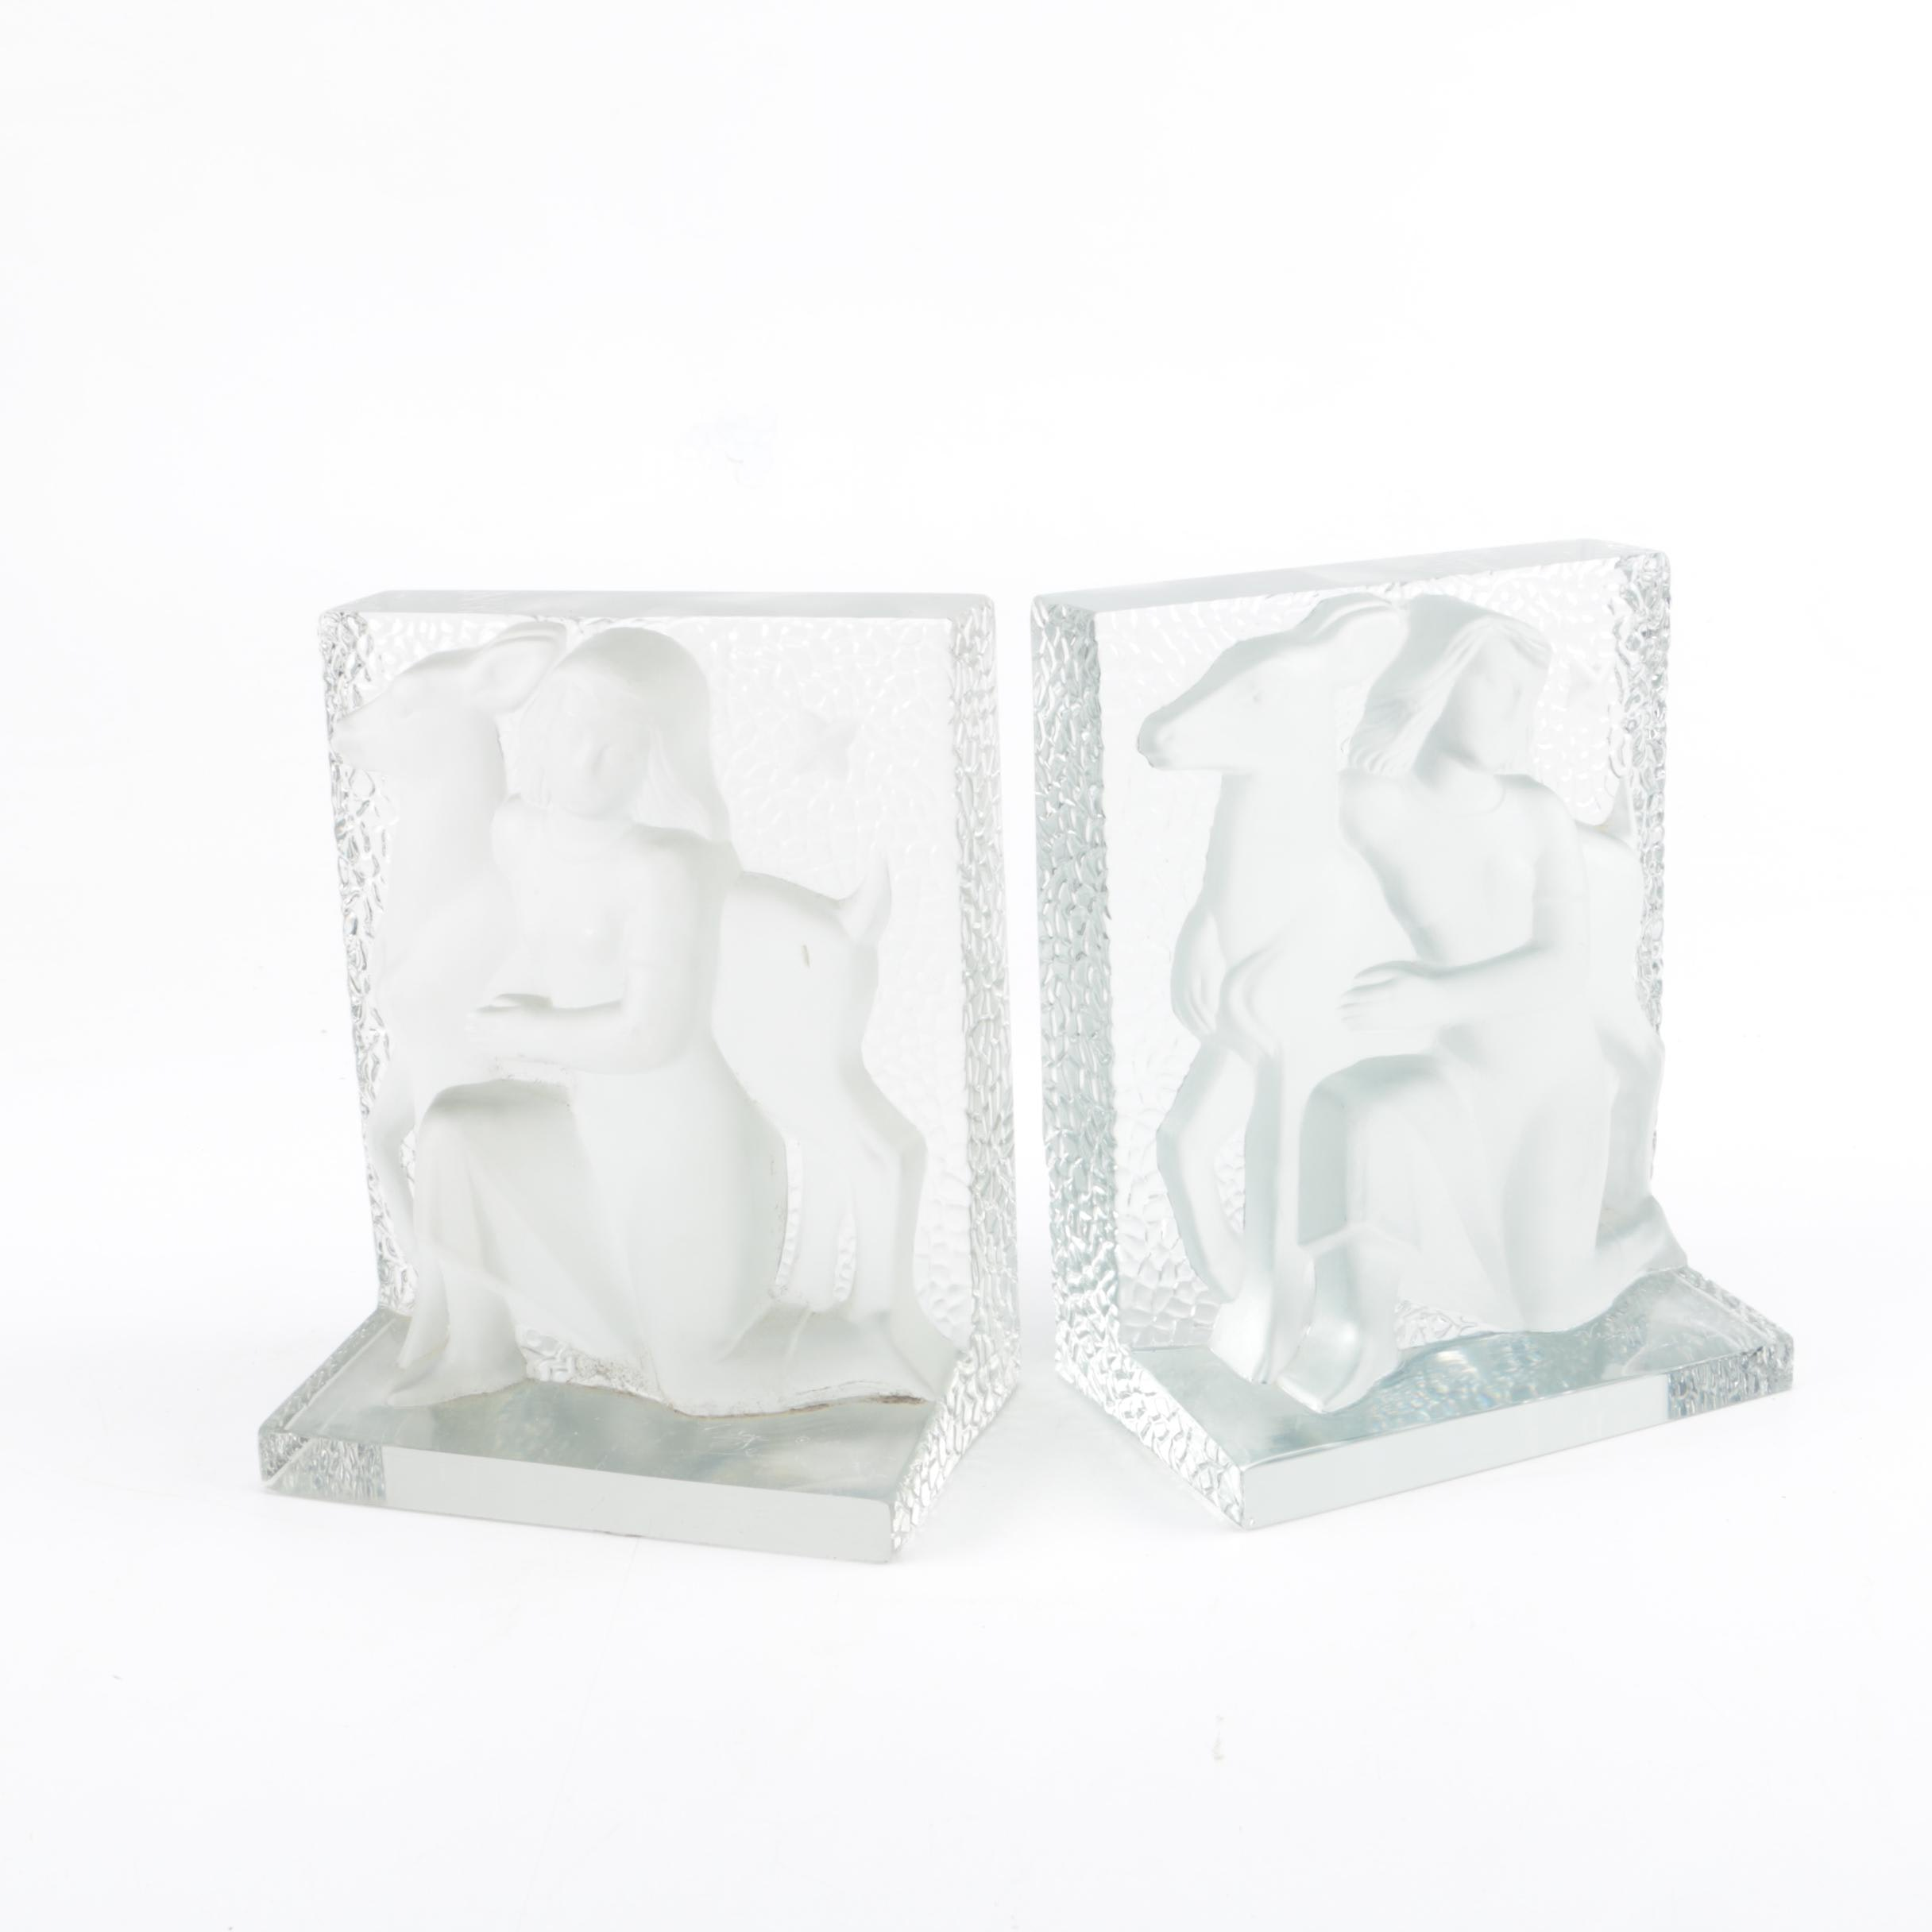 Verlys Signed Figure with Deer Glass Bookends